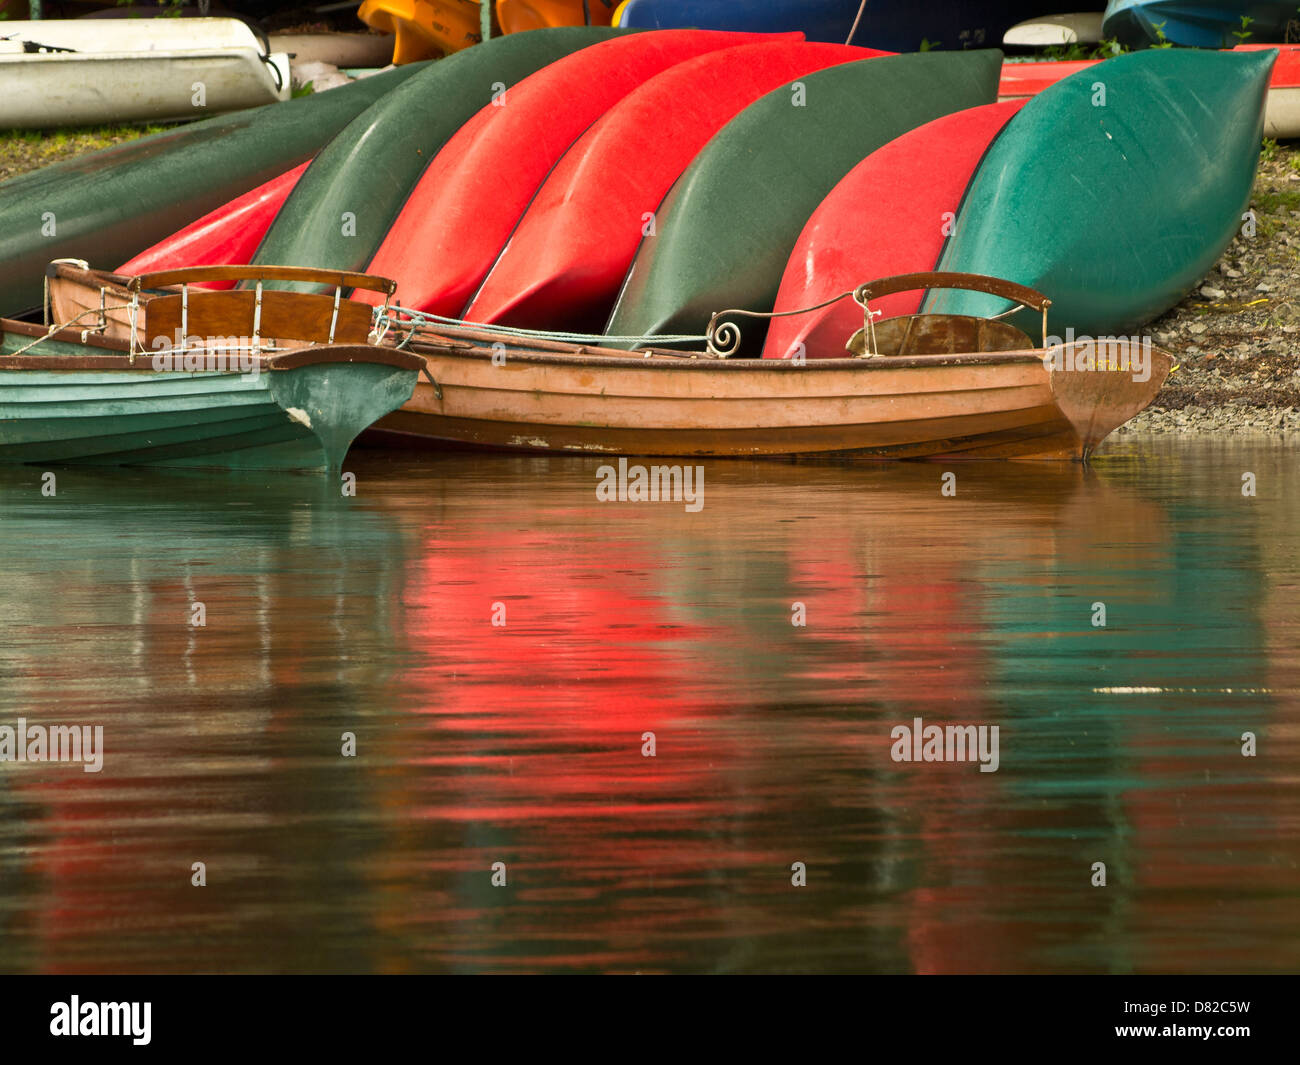 Red and green colorful bright boats at the shore of the lake, Nicol End, Lake District, Cumbria, UK - Stock Image